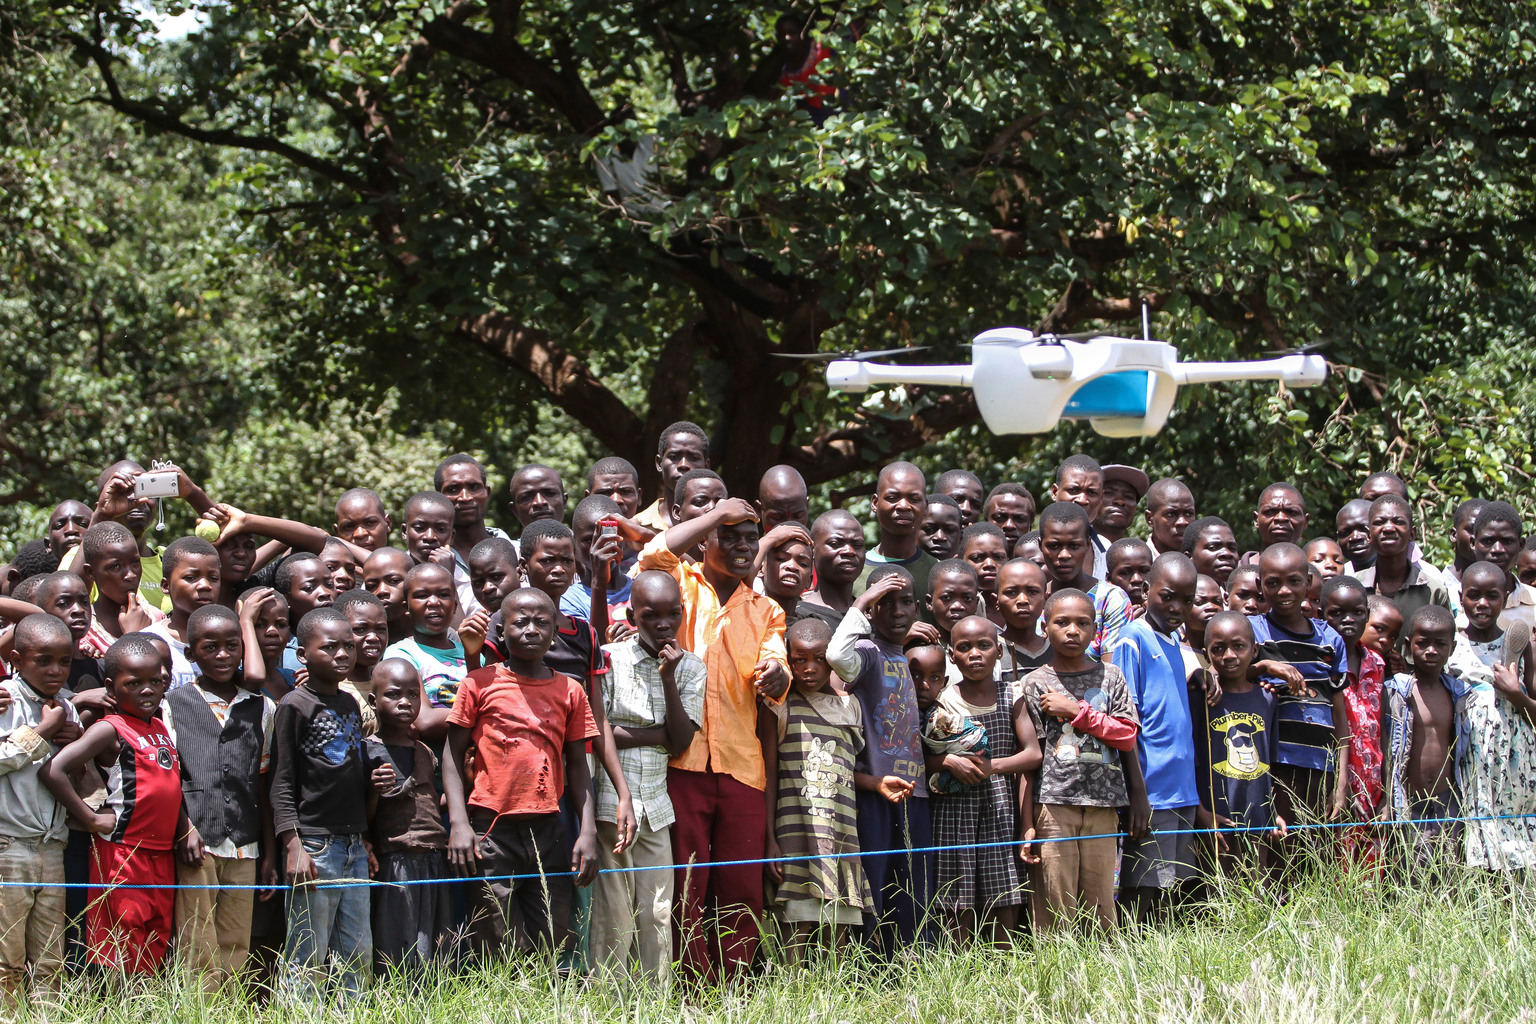 A group of children looking at a drone.